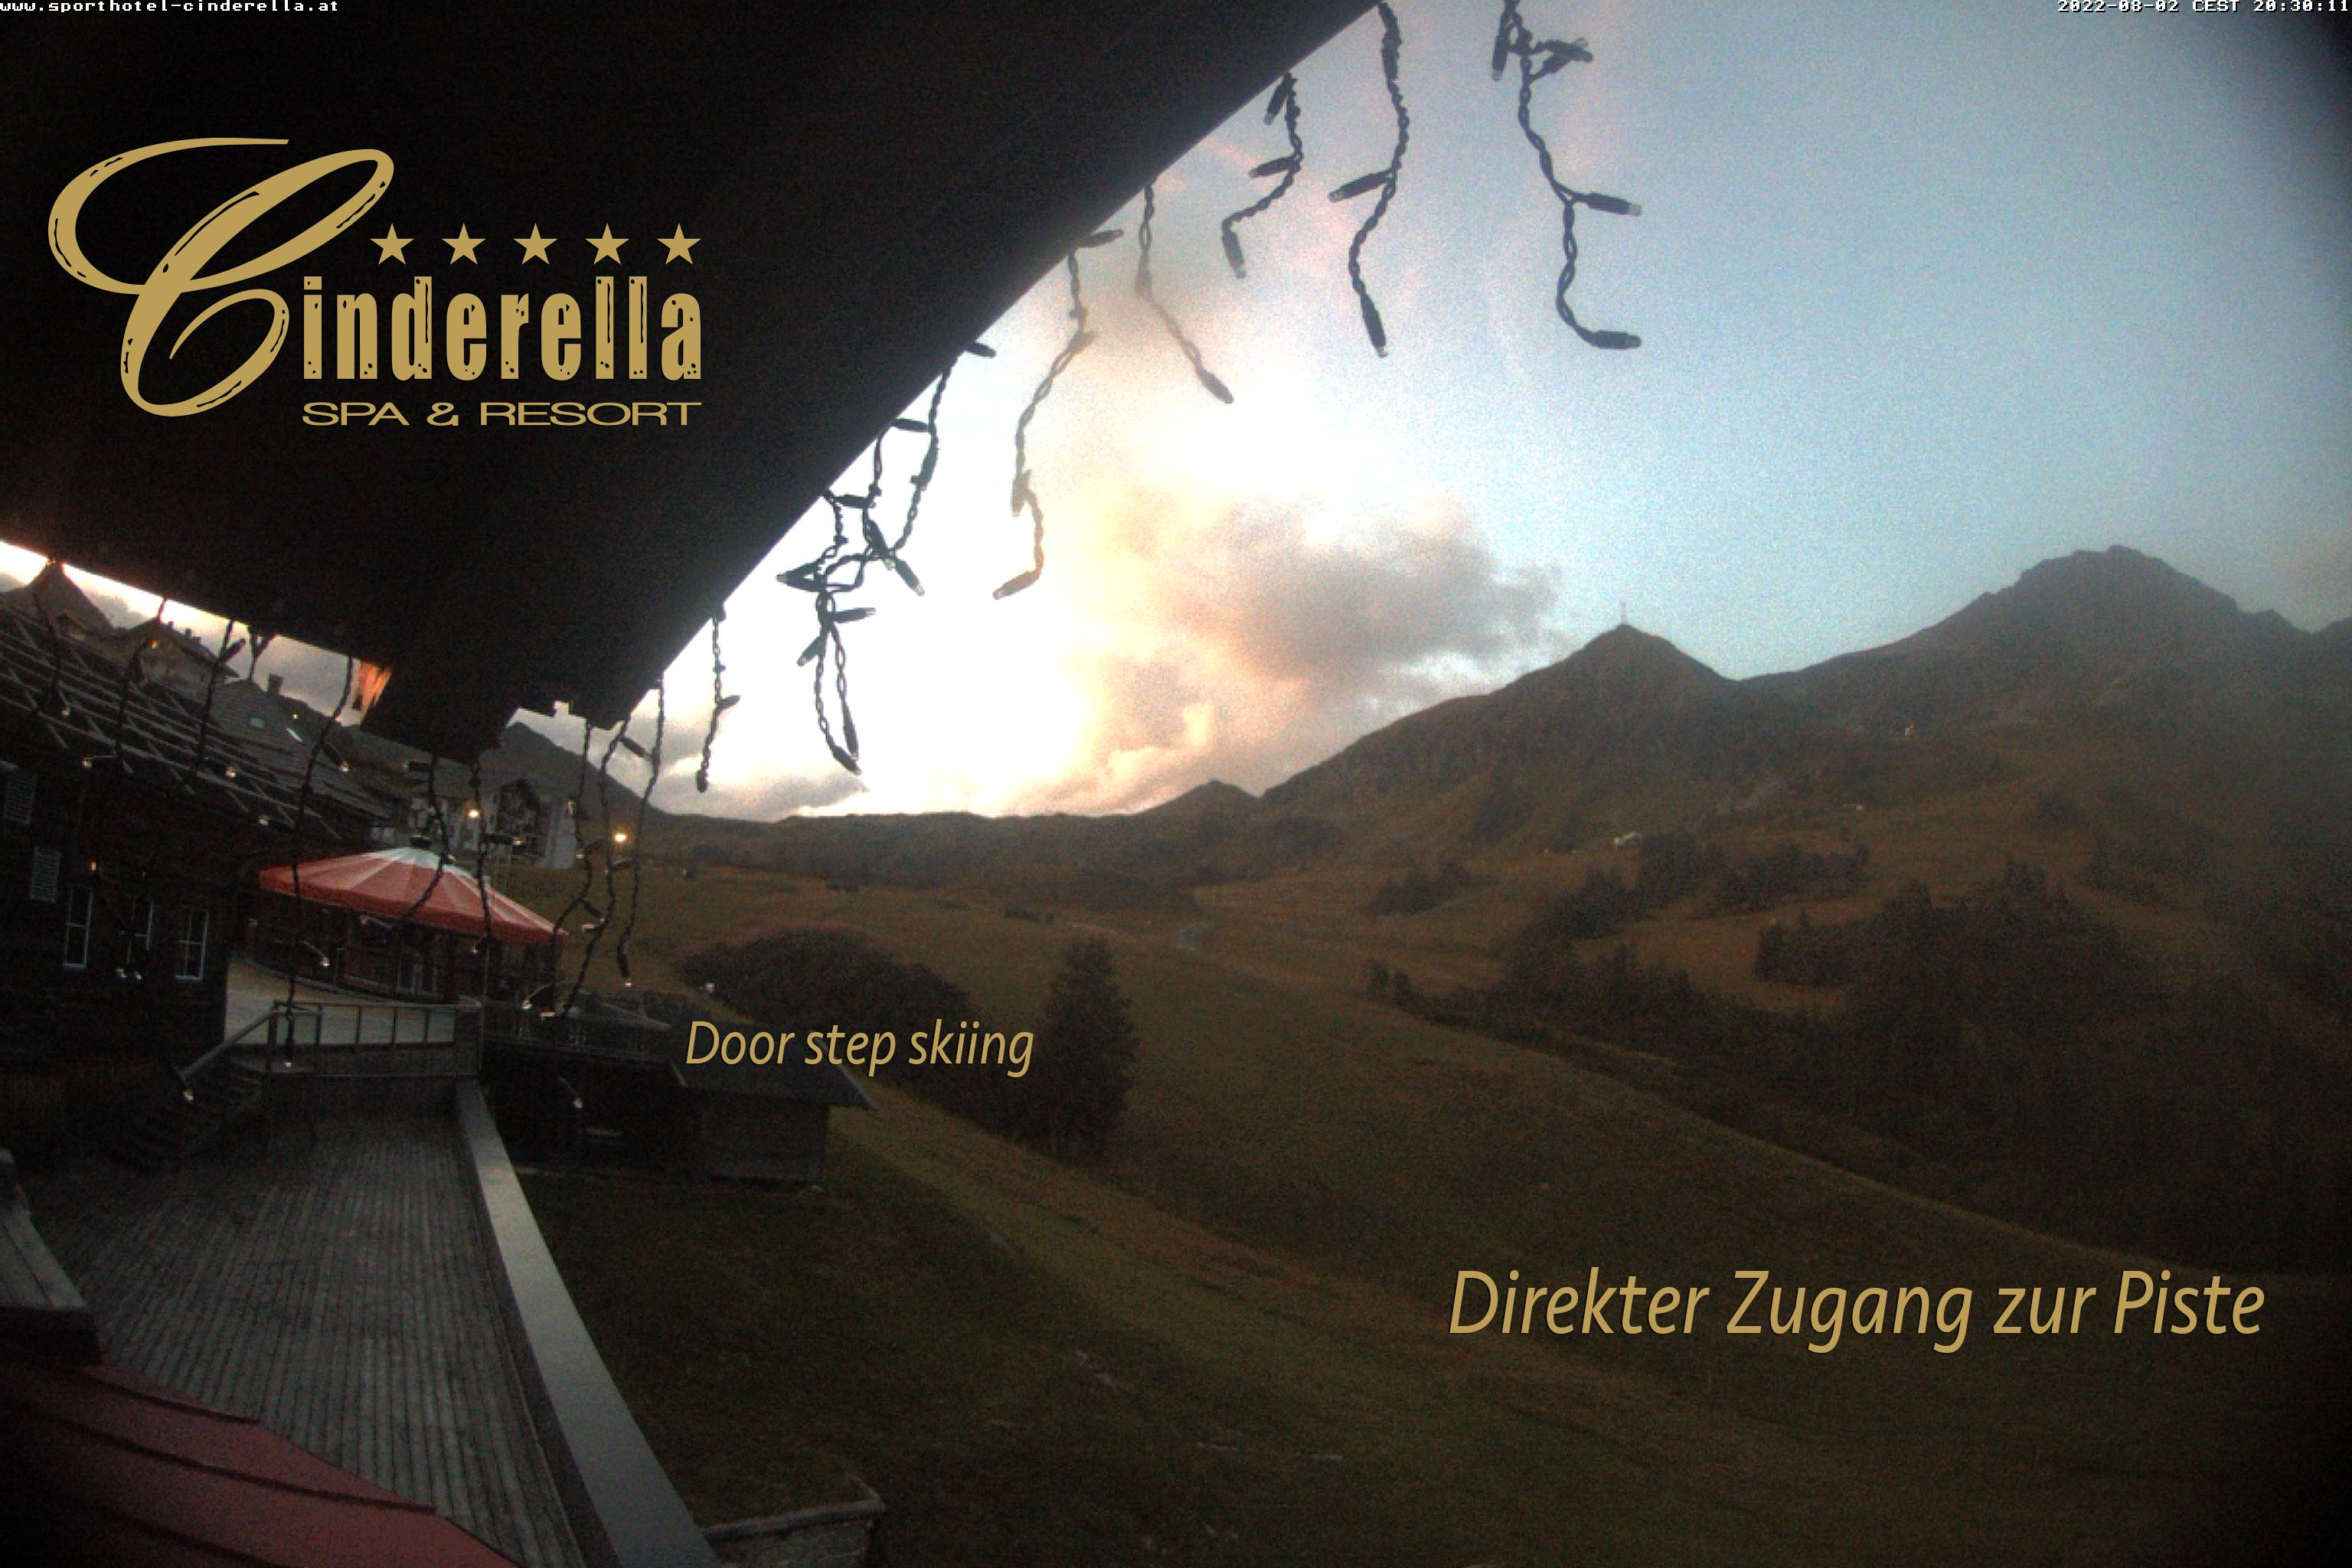 Webcam ****Hotel Cinderella